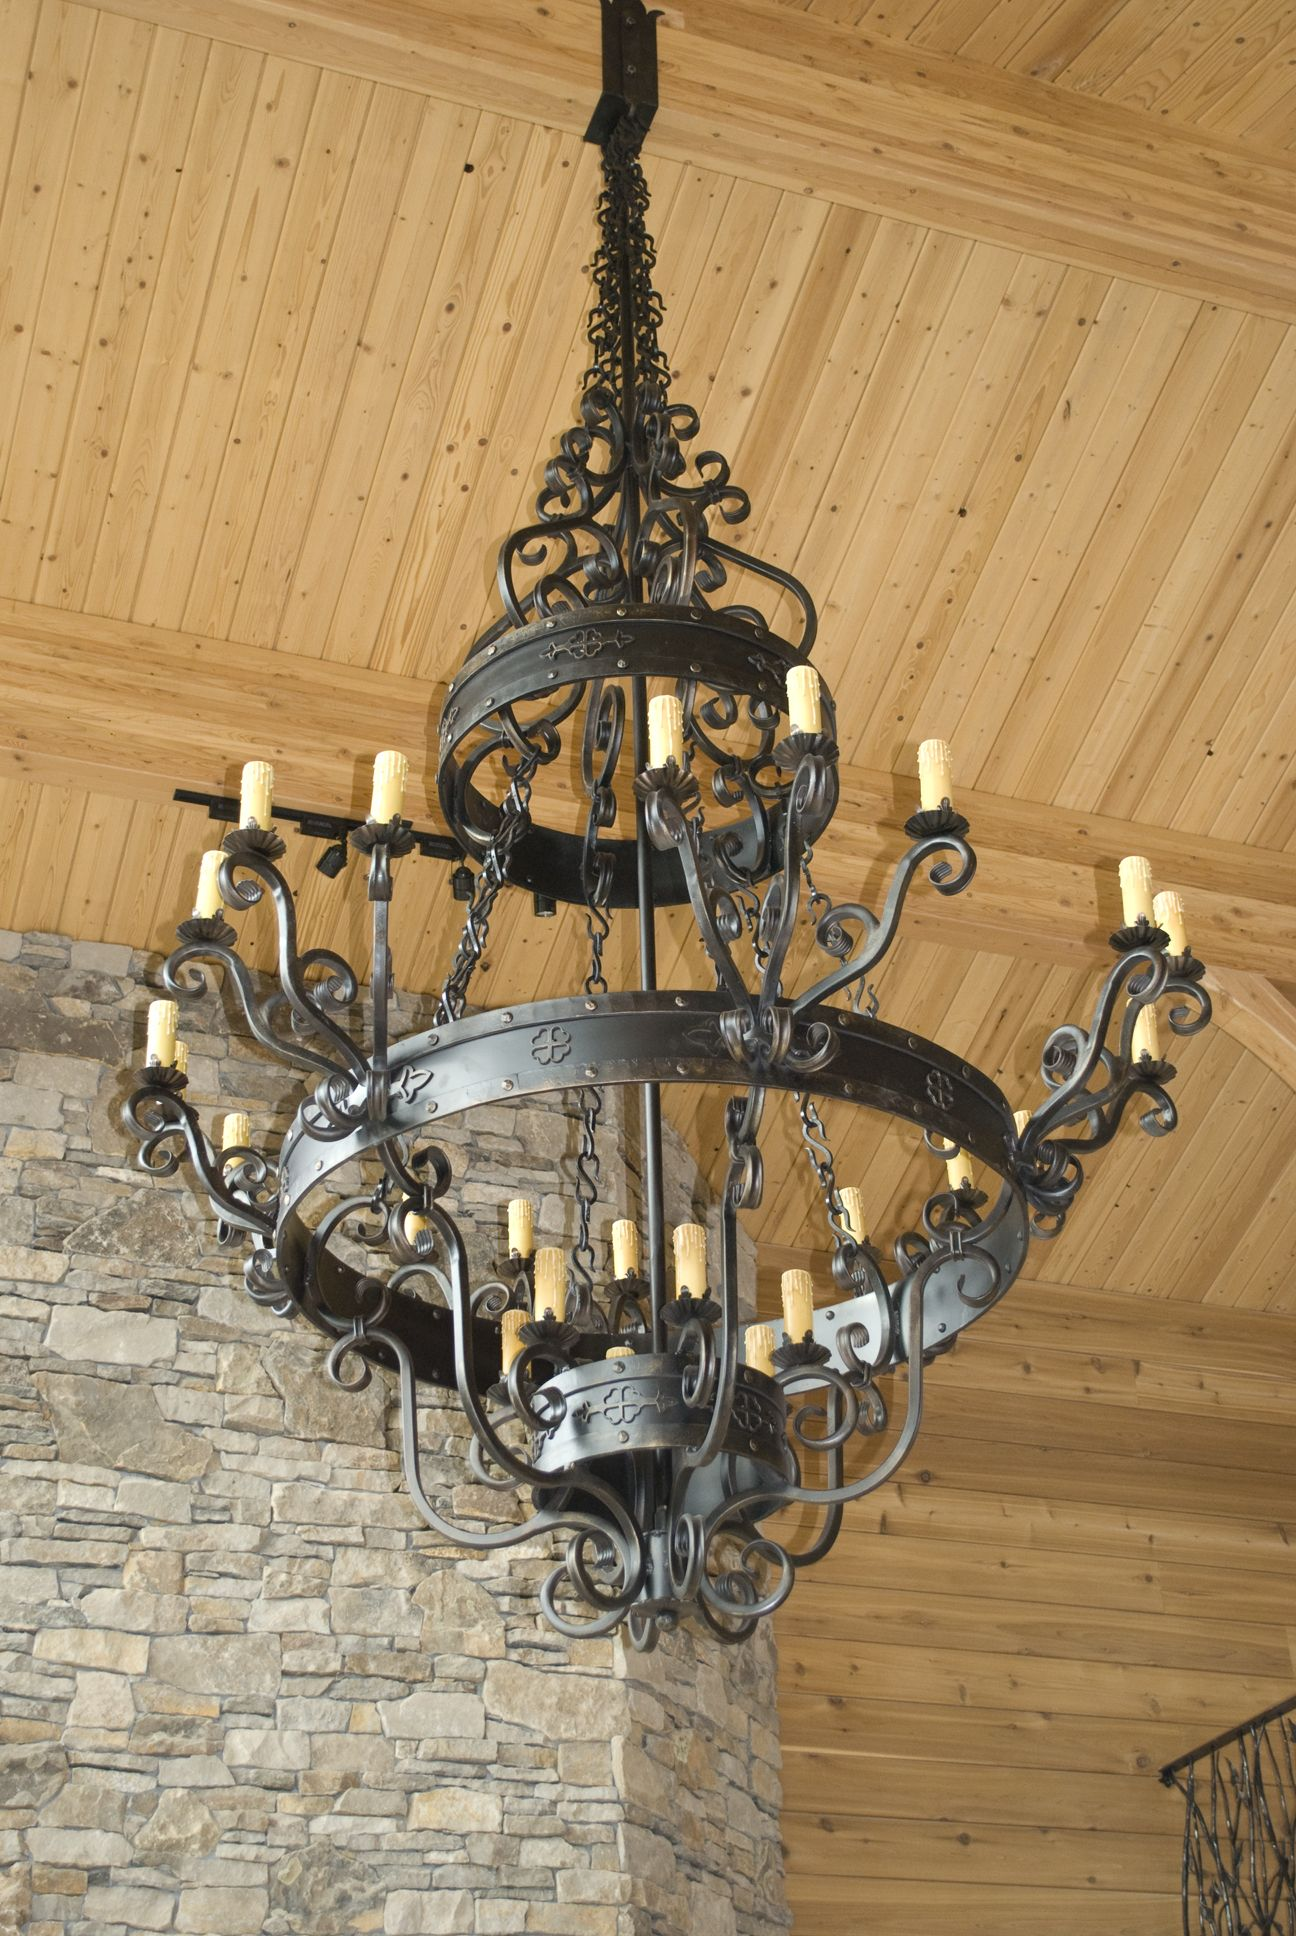 candle flower pendant modern lowes metal rustic mirror wooden lighting farmhouse classy white table roof great vas bronze dining antique round fixtures light chandeliers cream inexpensive ideas outstanding full wood room important lights iron big wonderful of and large chandelier island size mini lamp with